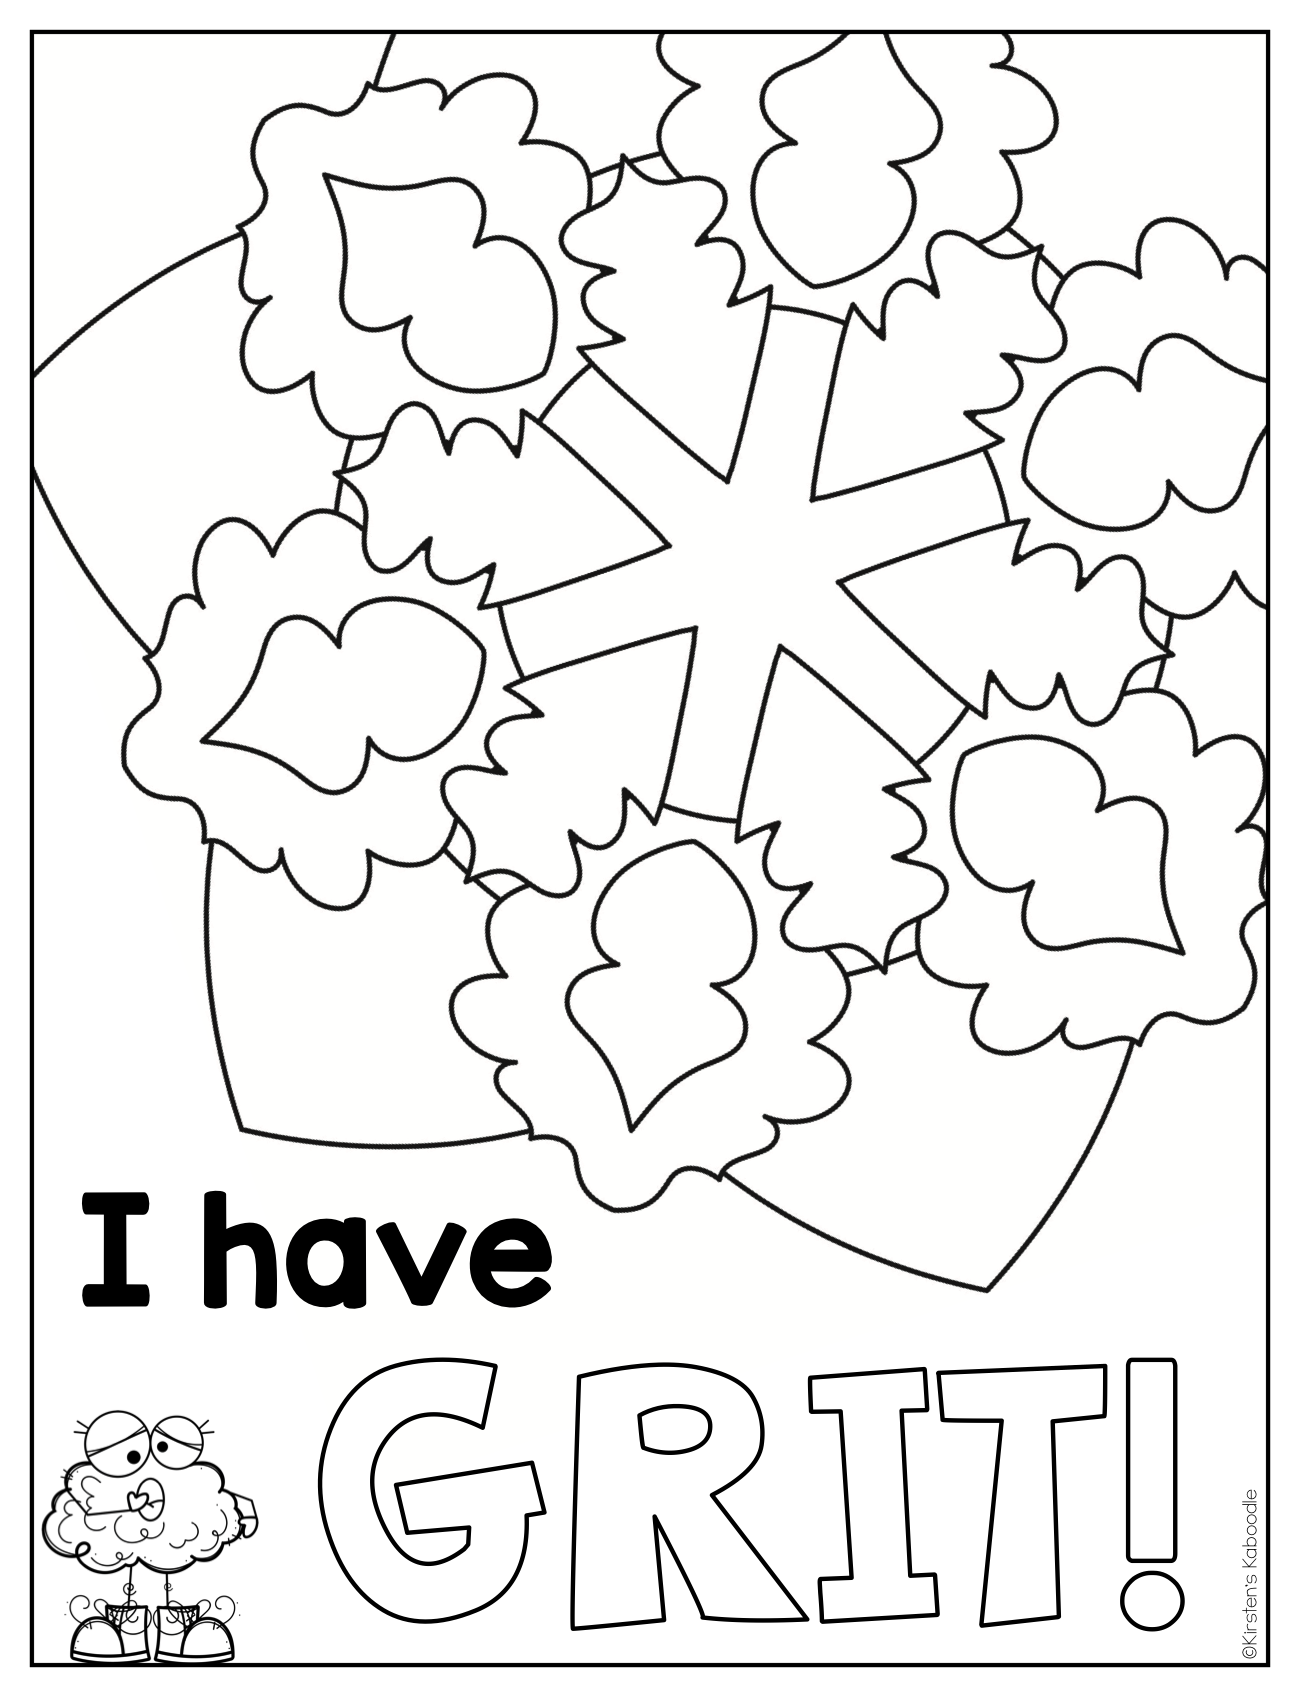 Growth Mindset Coloring Pages - Affirmations for Lower Grades